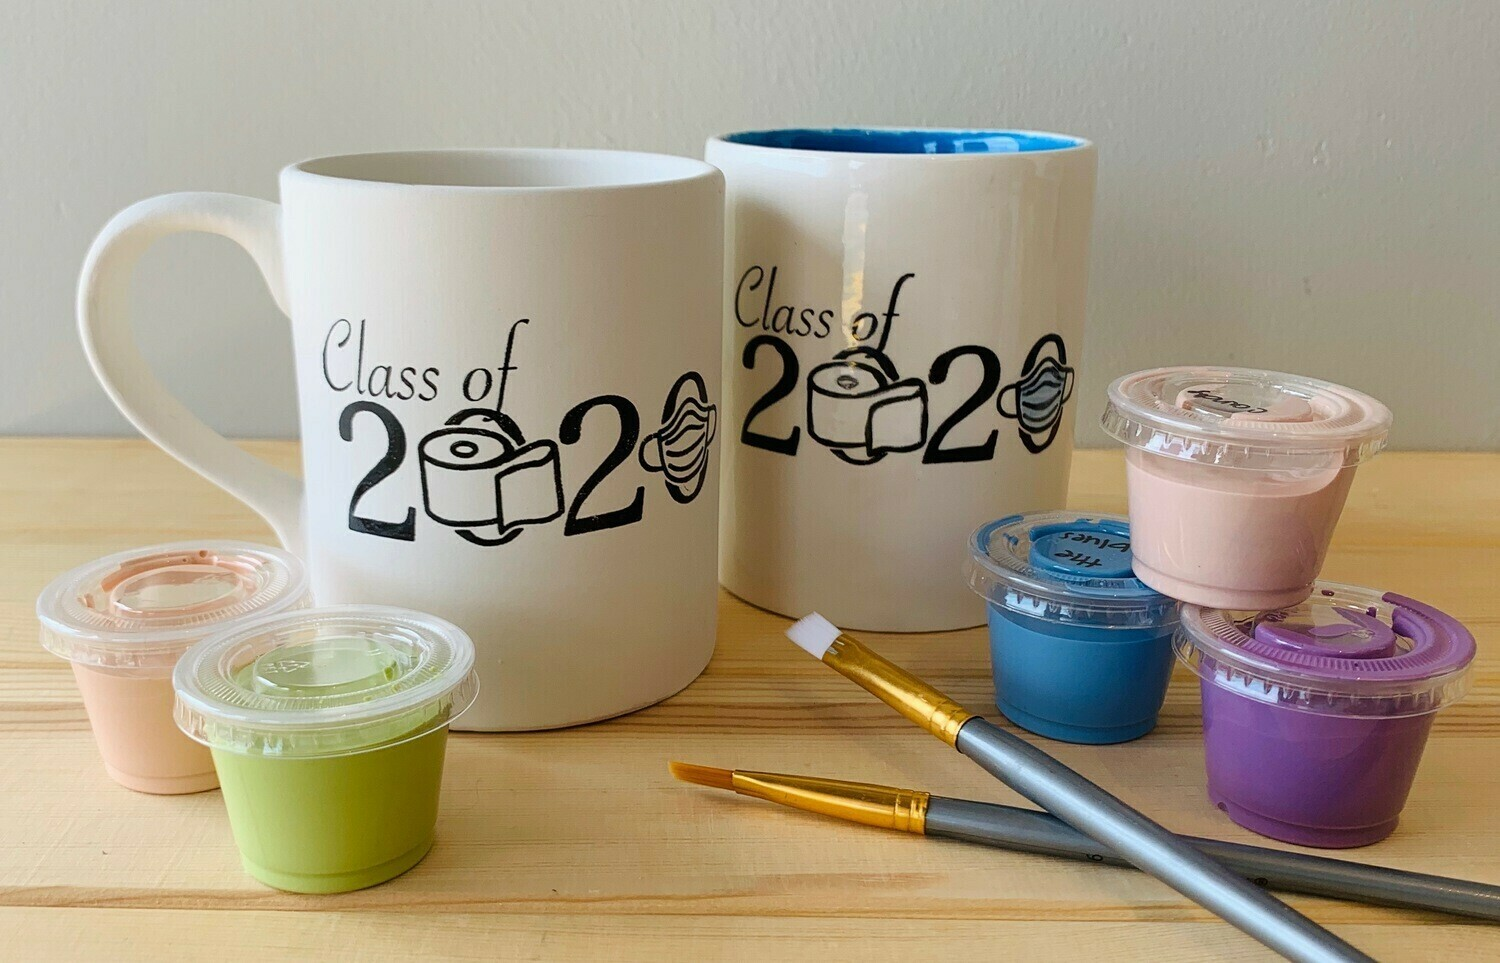 Take Home Coloring Book 12 oz Class of 2020 Mug with Glazes - Pick up Curbside